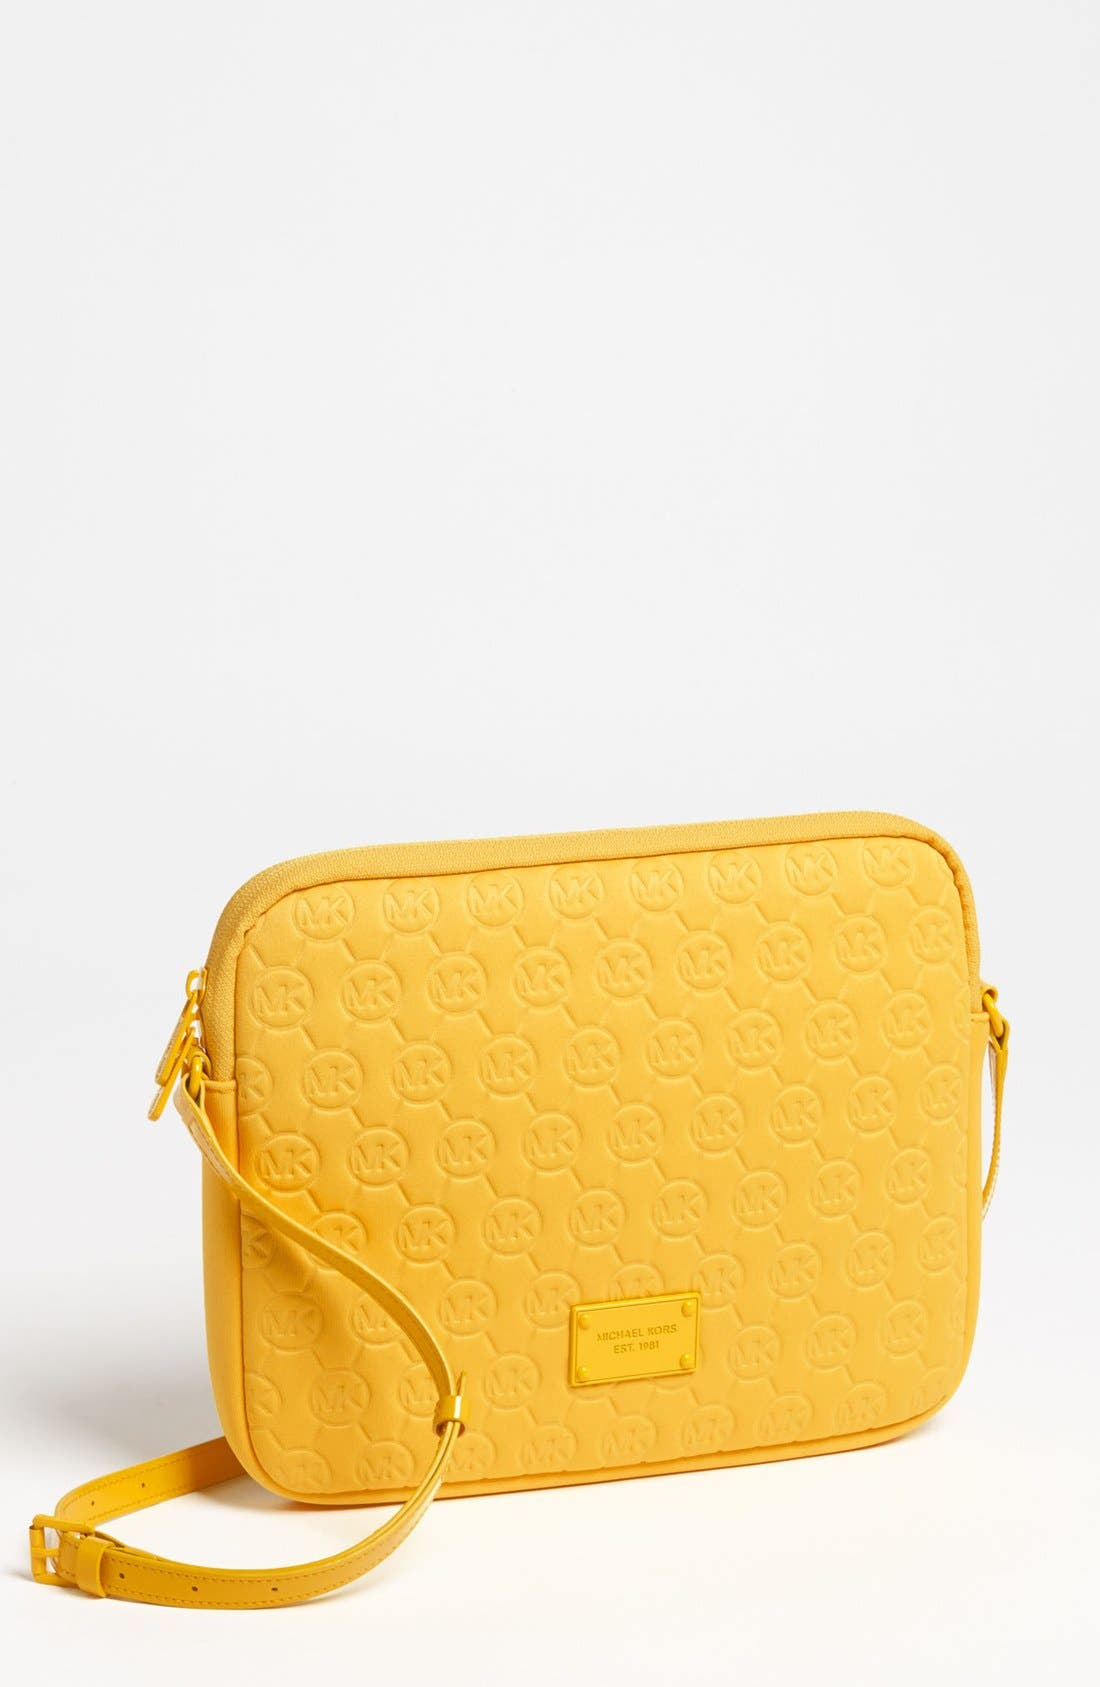 Alternate Image 1 Selected - MICHAEL Michael Kors iPad 2 Crossbody Bag